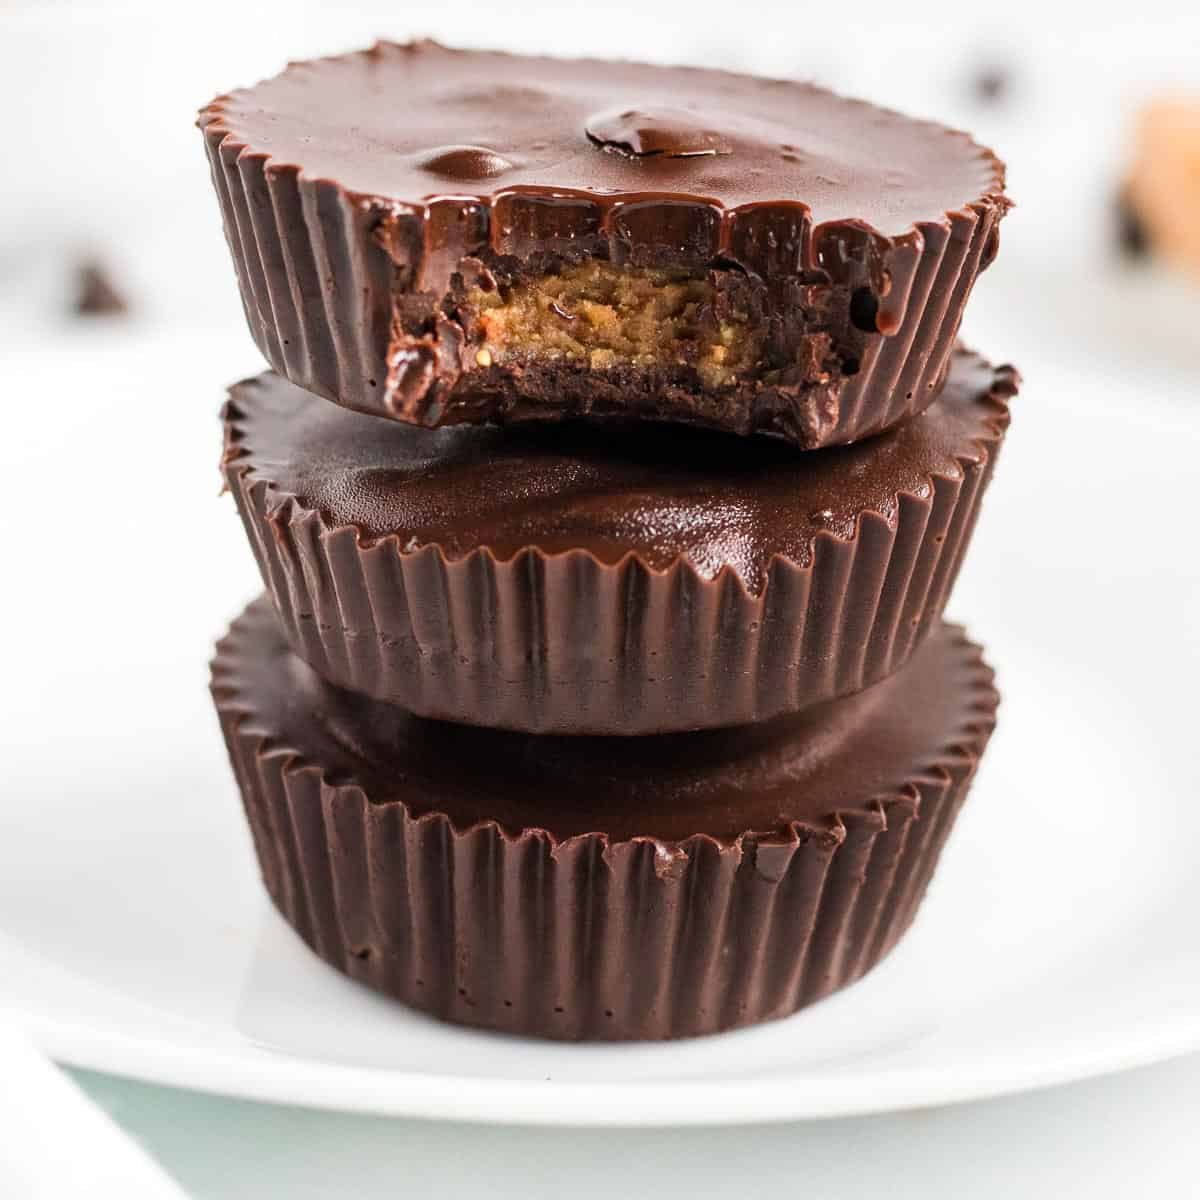 stacked peanut butter cups with a bite taken out